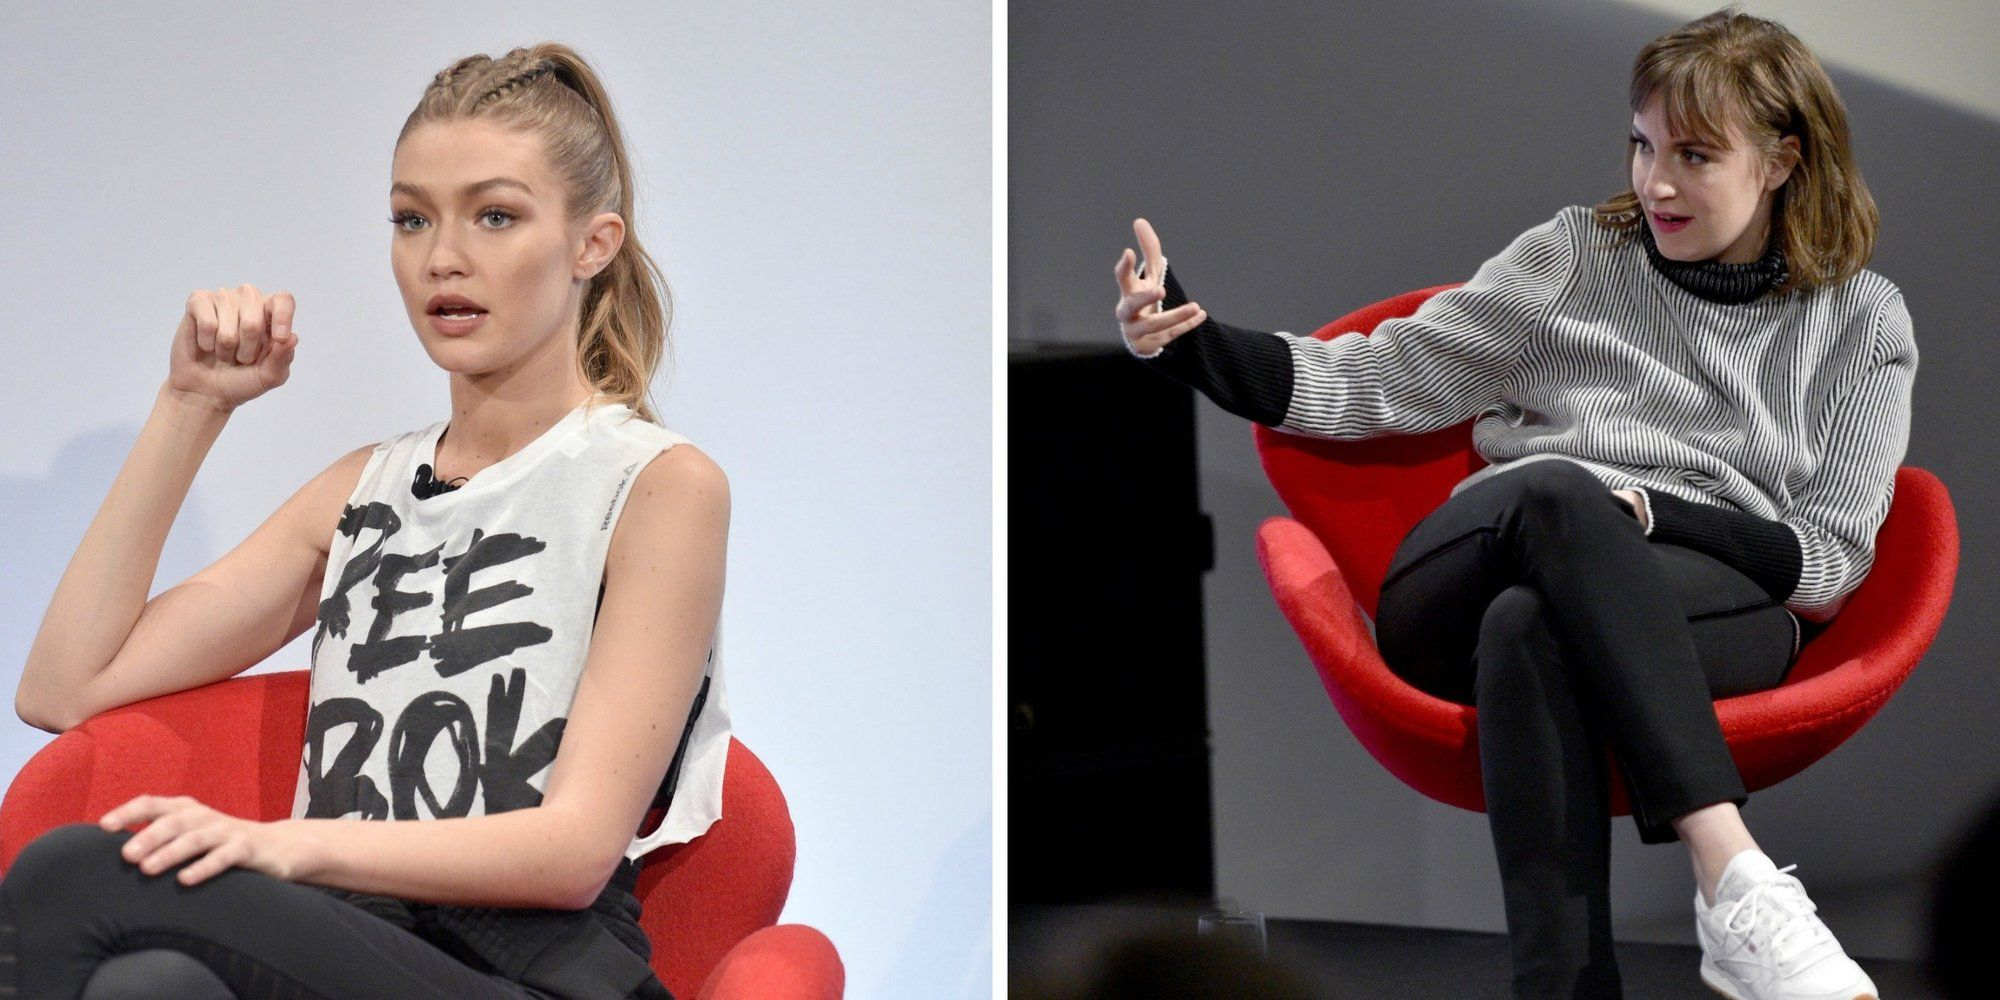 Gigi Hadid And Lena Dunham Make The Perfect Mental Health Pair